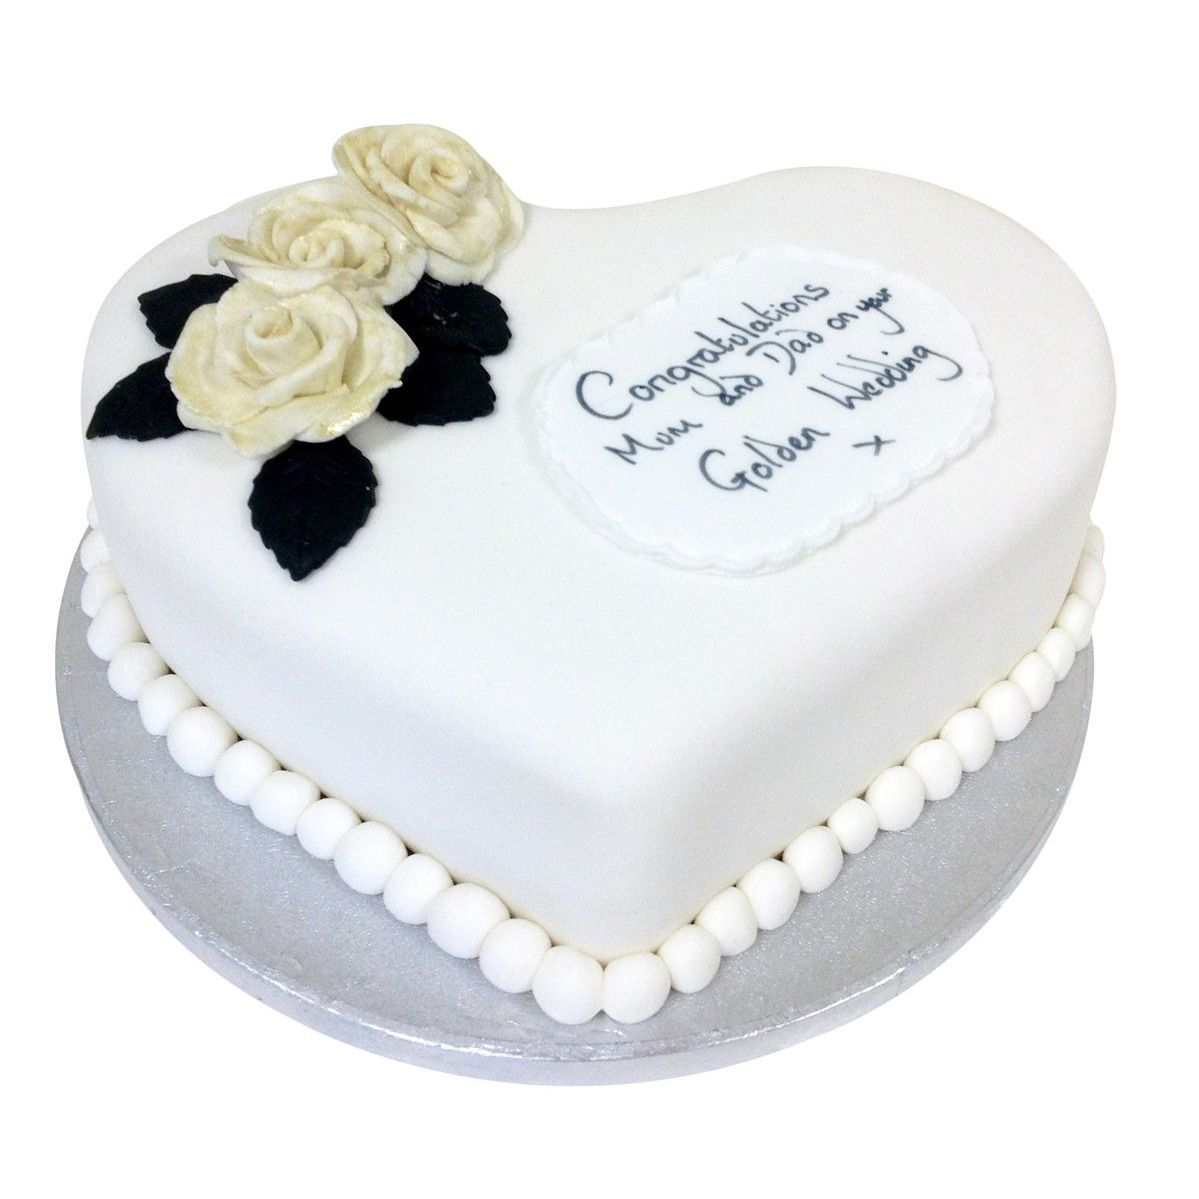 50th wedding anniversary cakes book